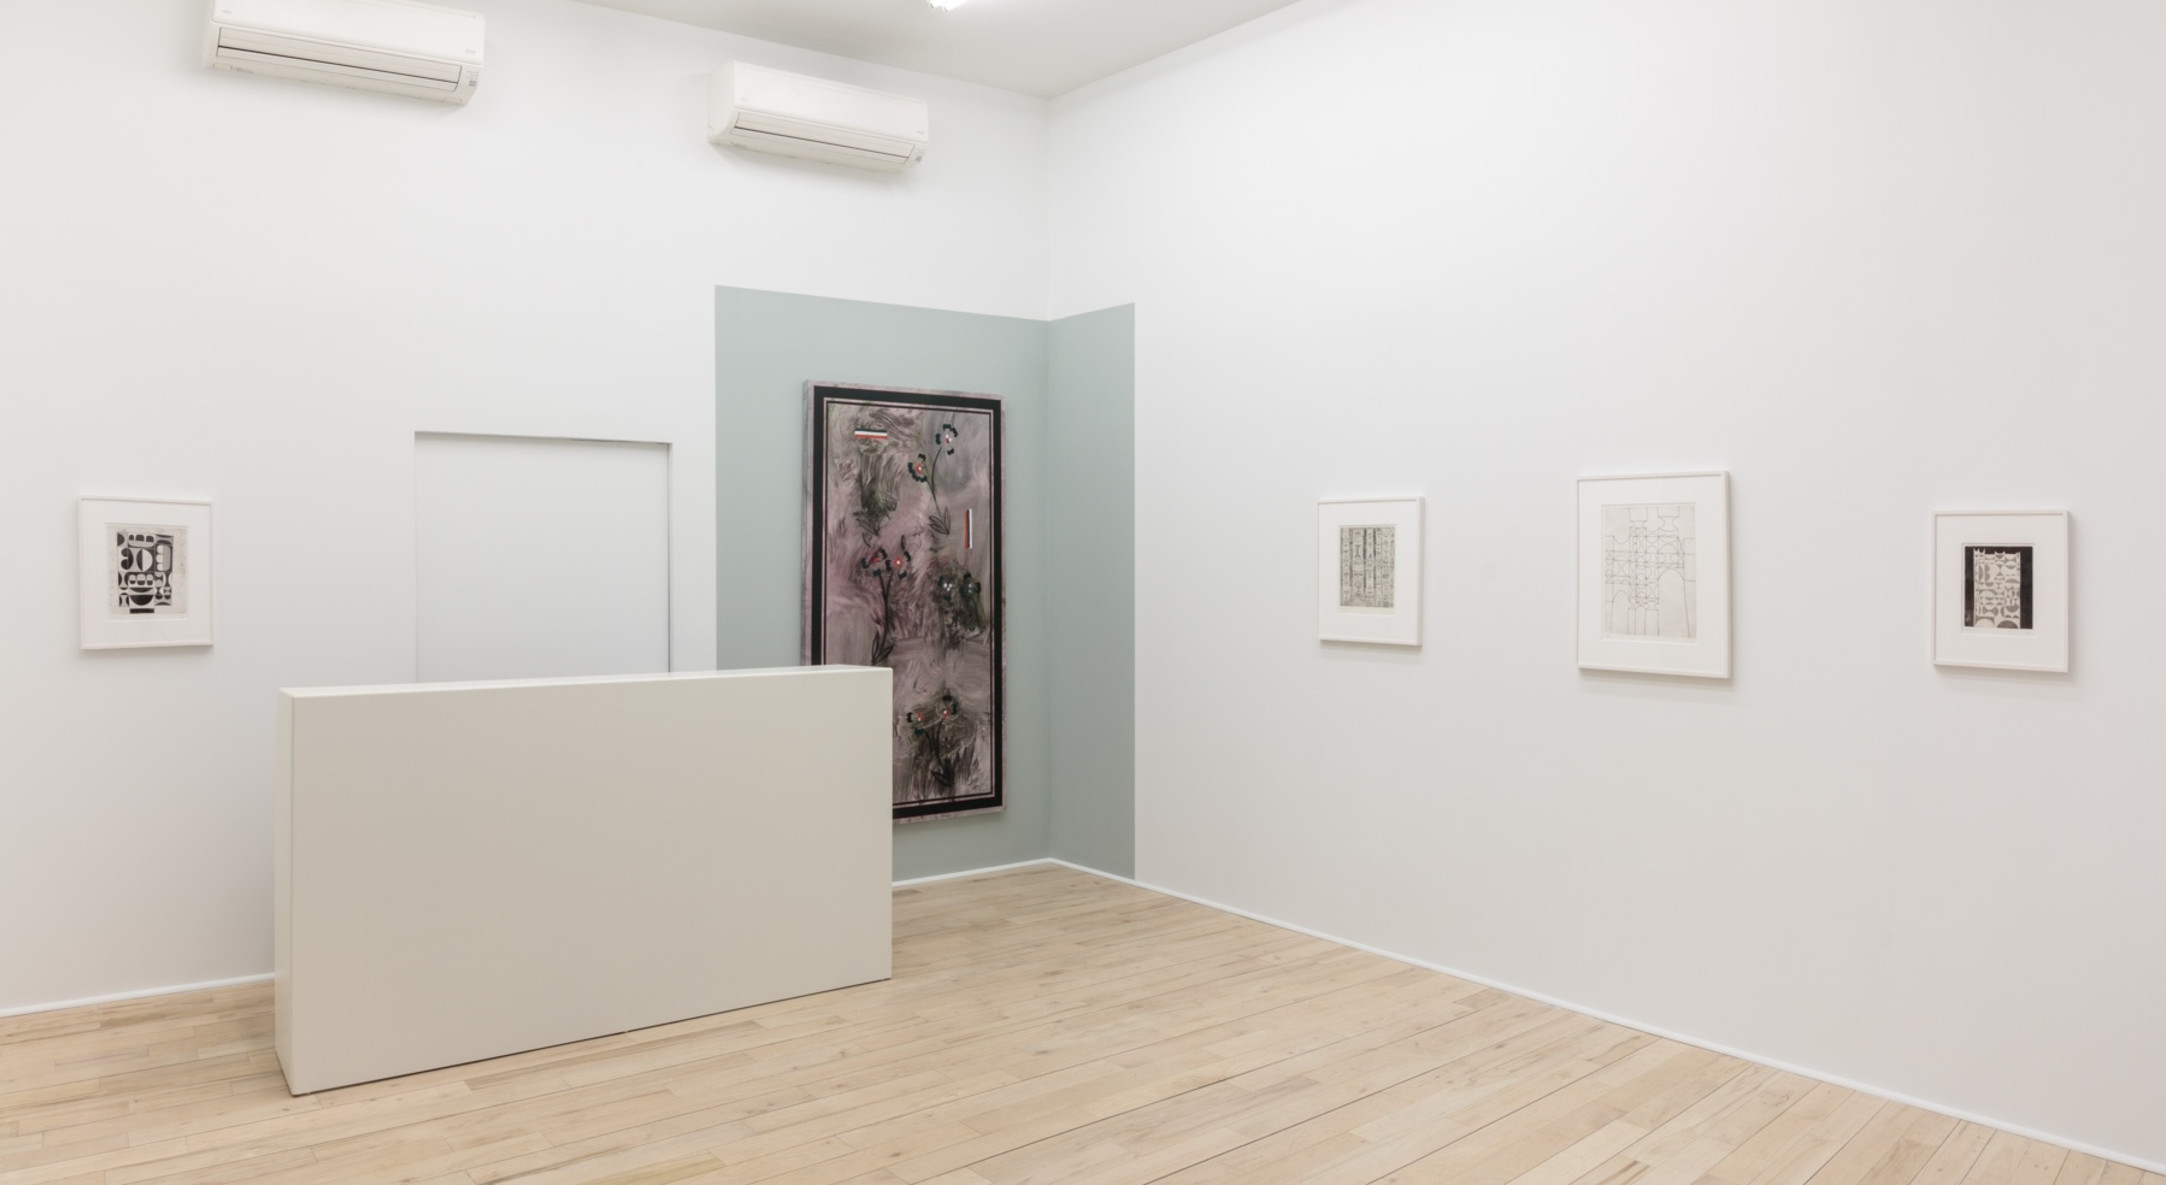 Installation view of Kamrooz Aram and Anwar Jalal Schemza at Hales Project Room, New York, 2018